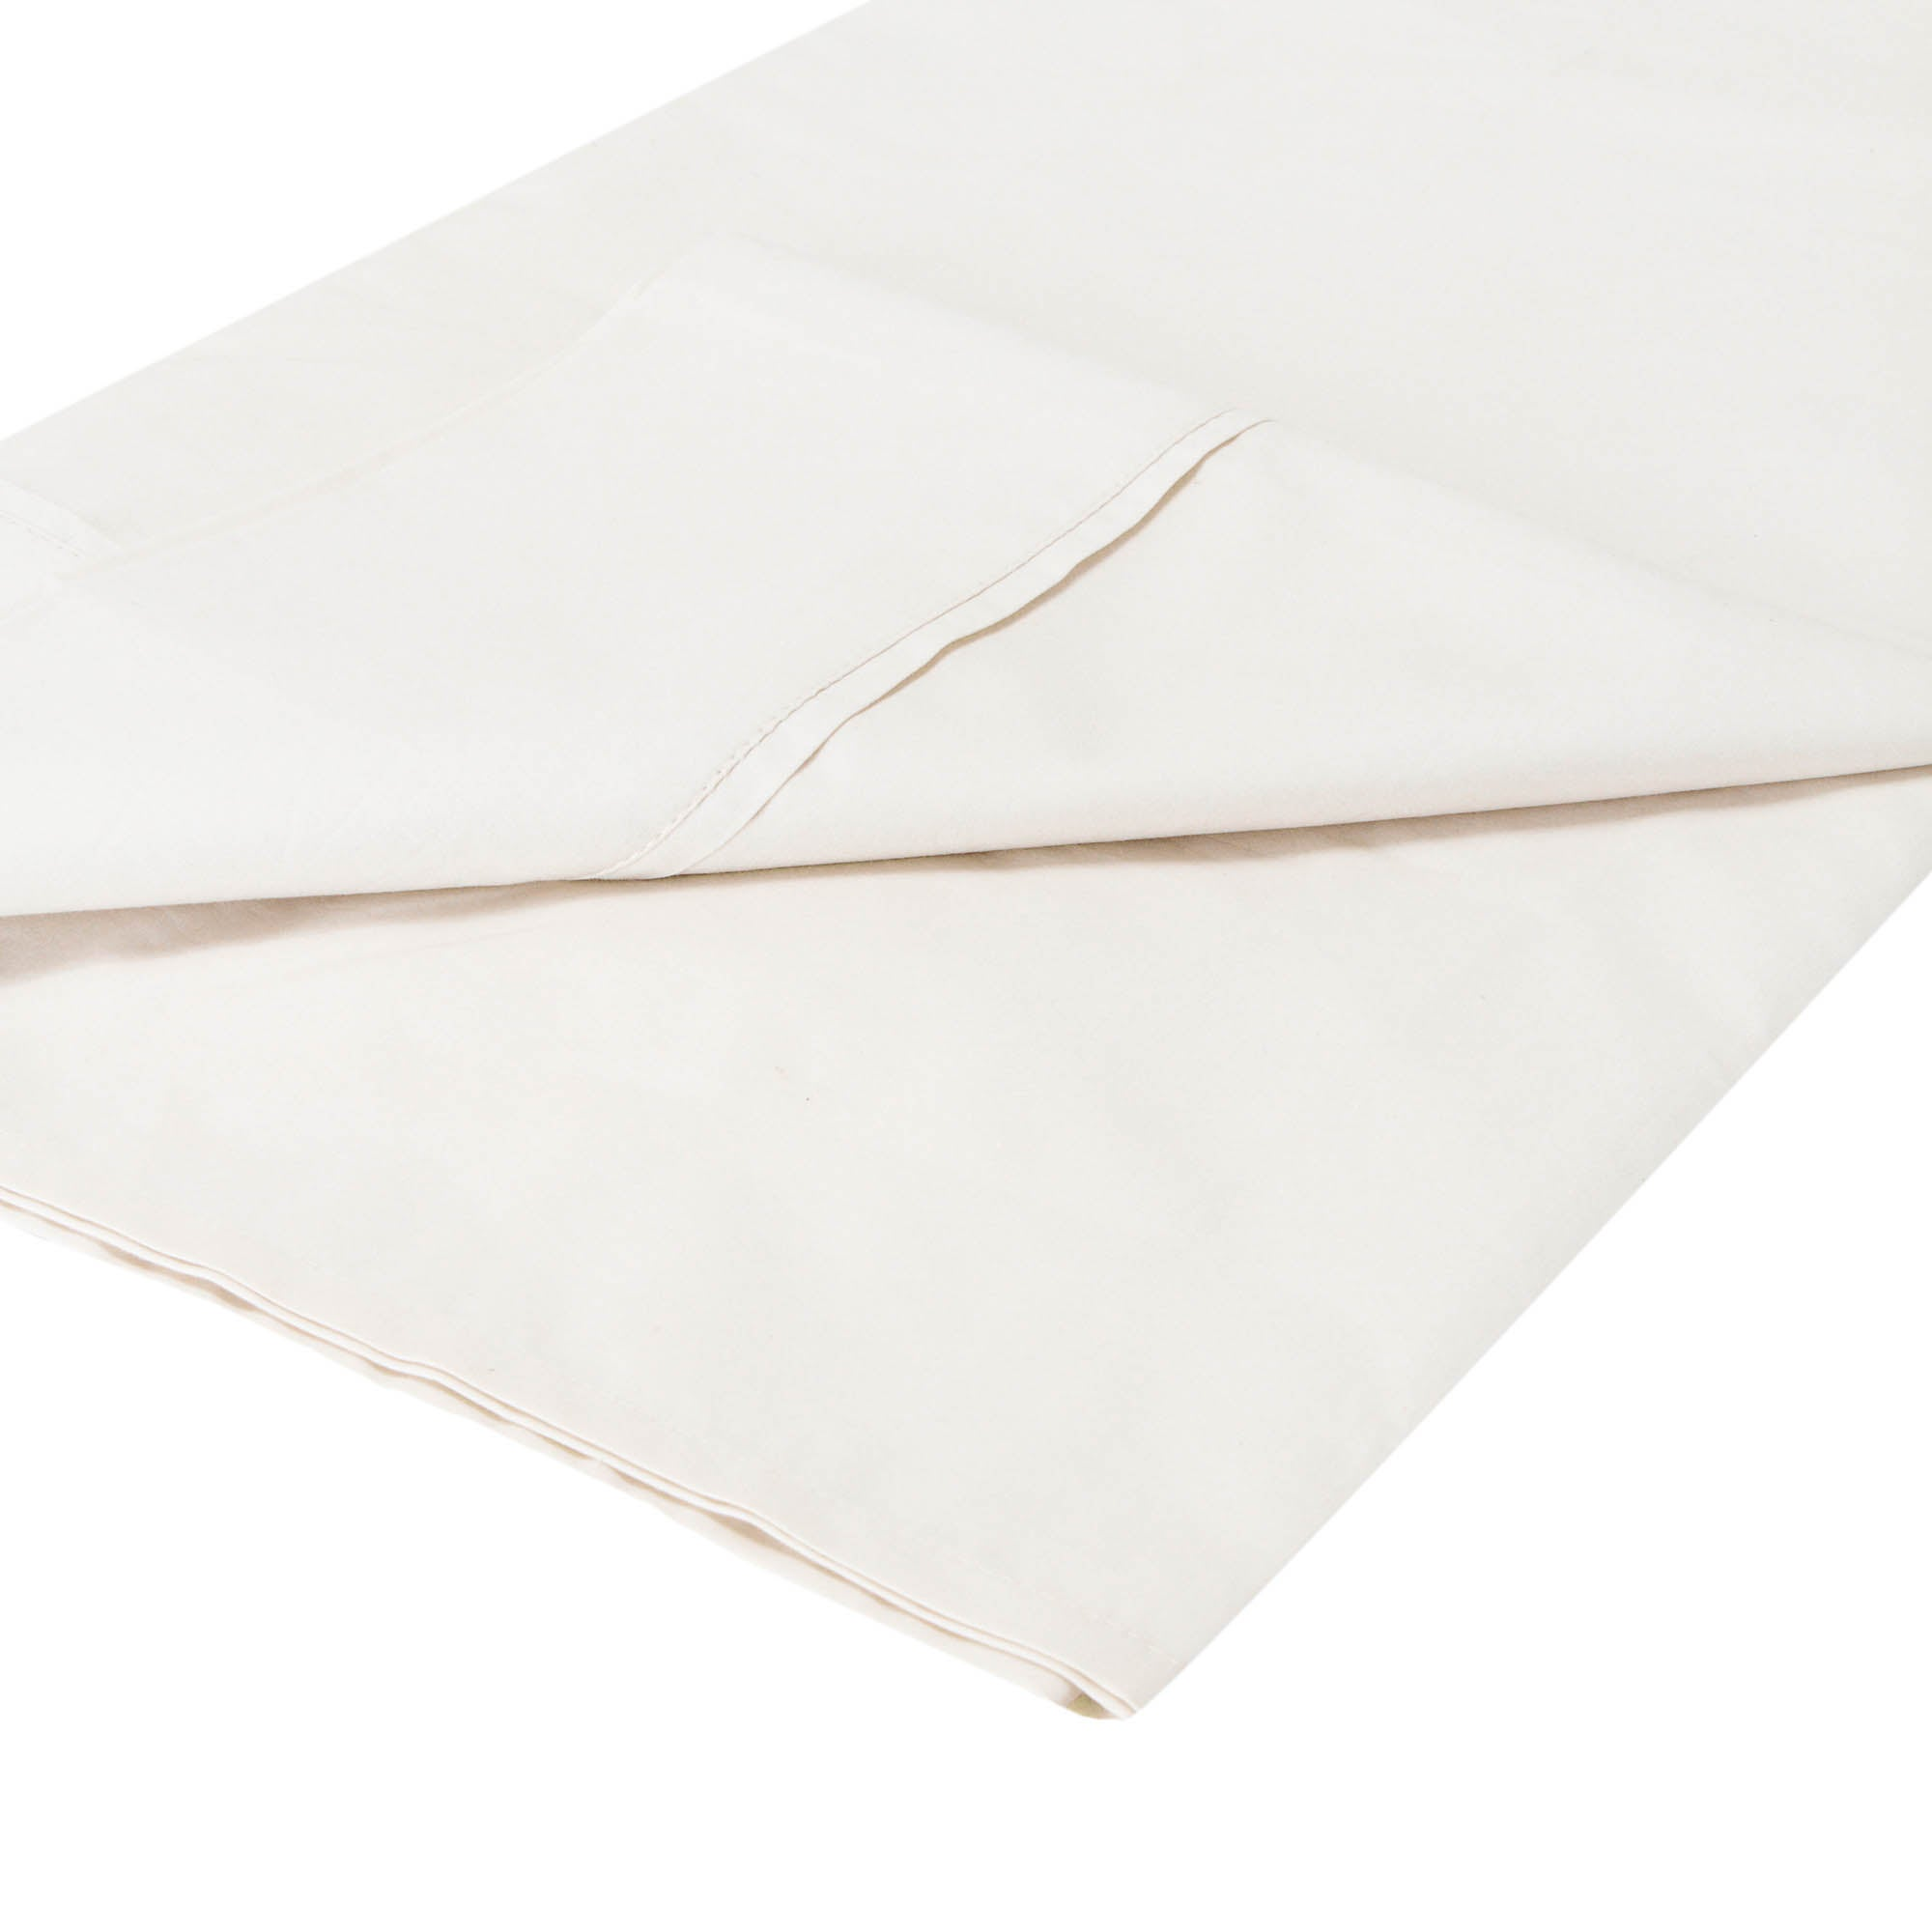 Dorma 300 Thread Count Plain Dye Collection Flat Sheet